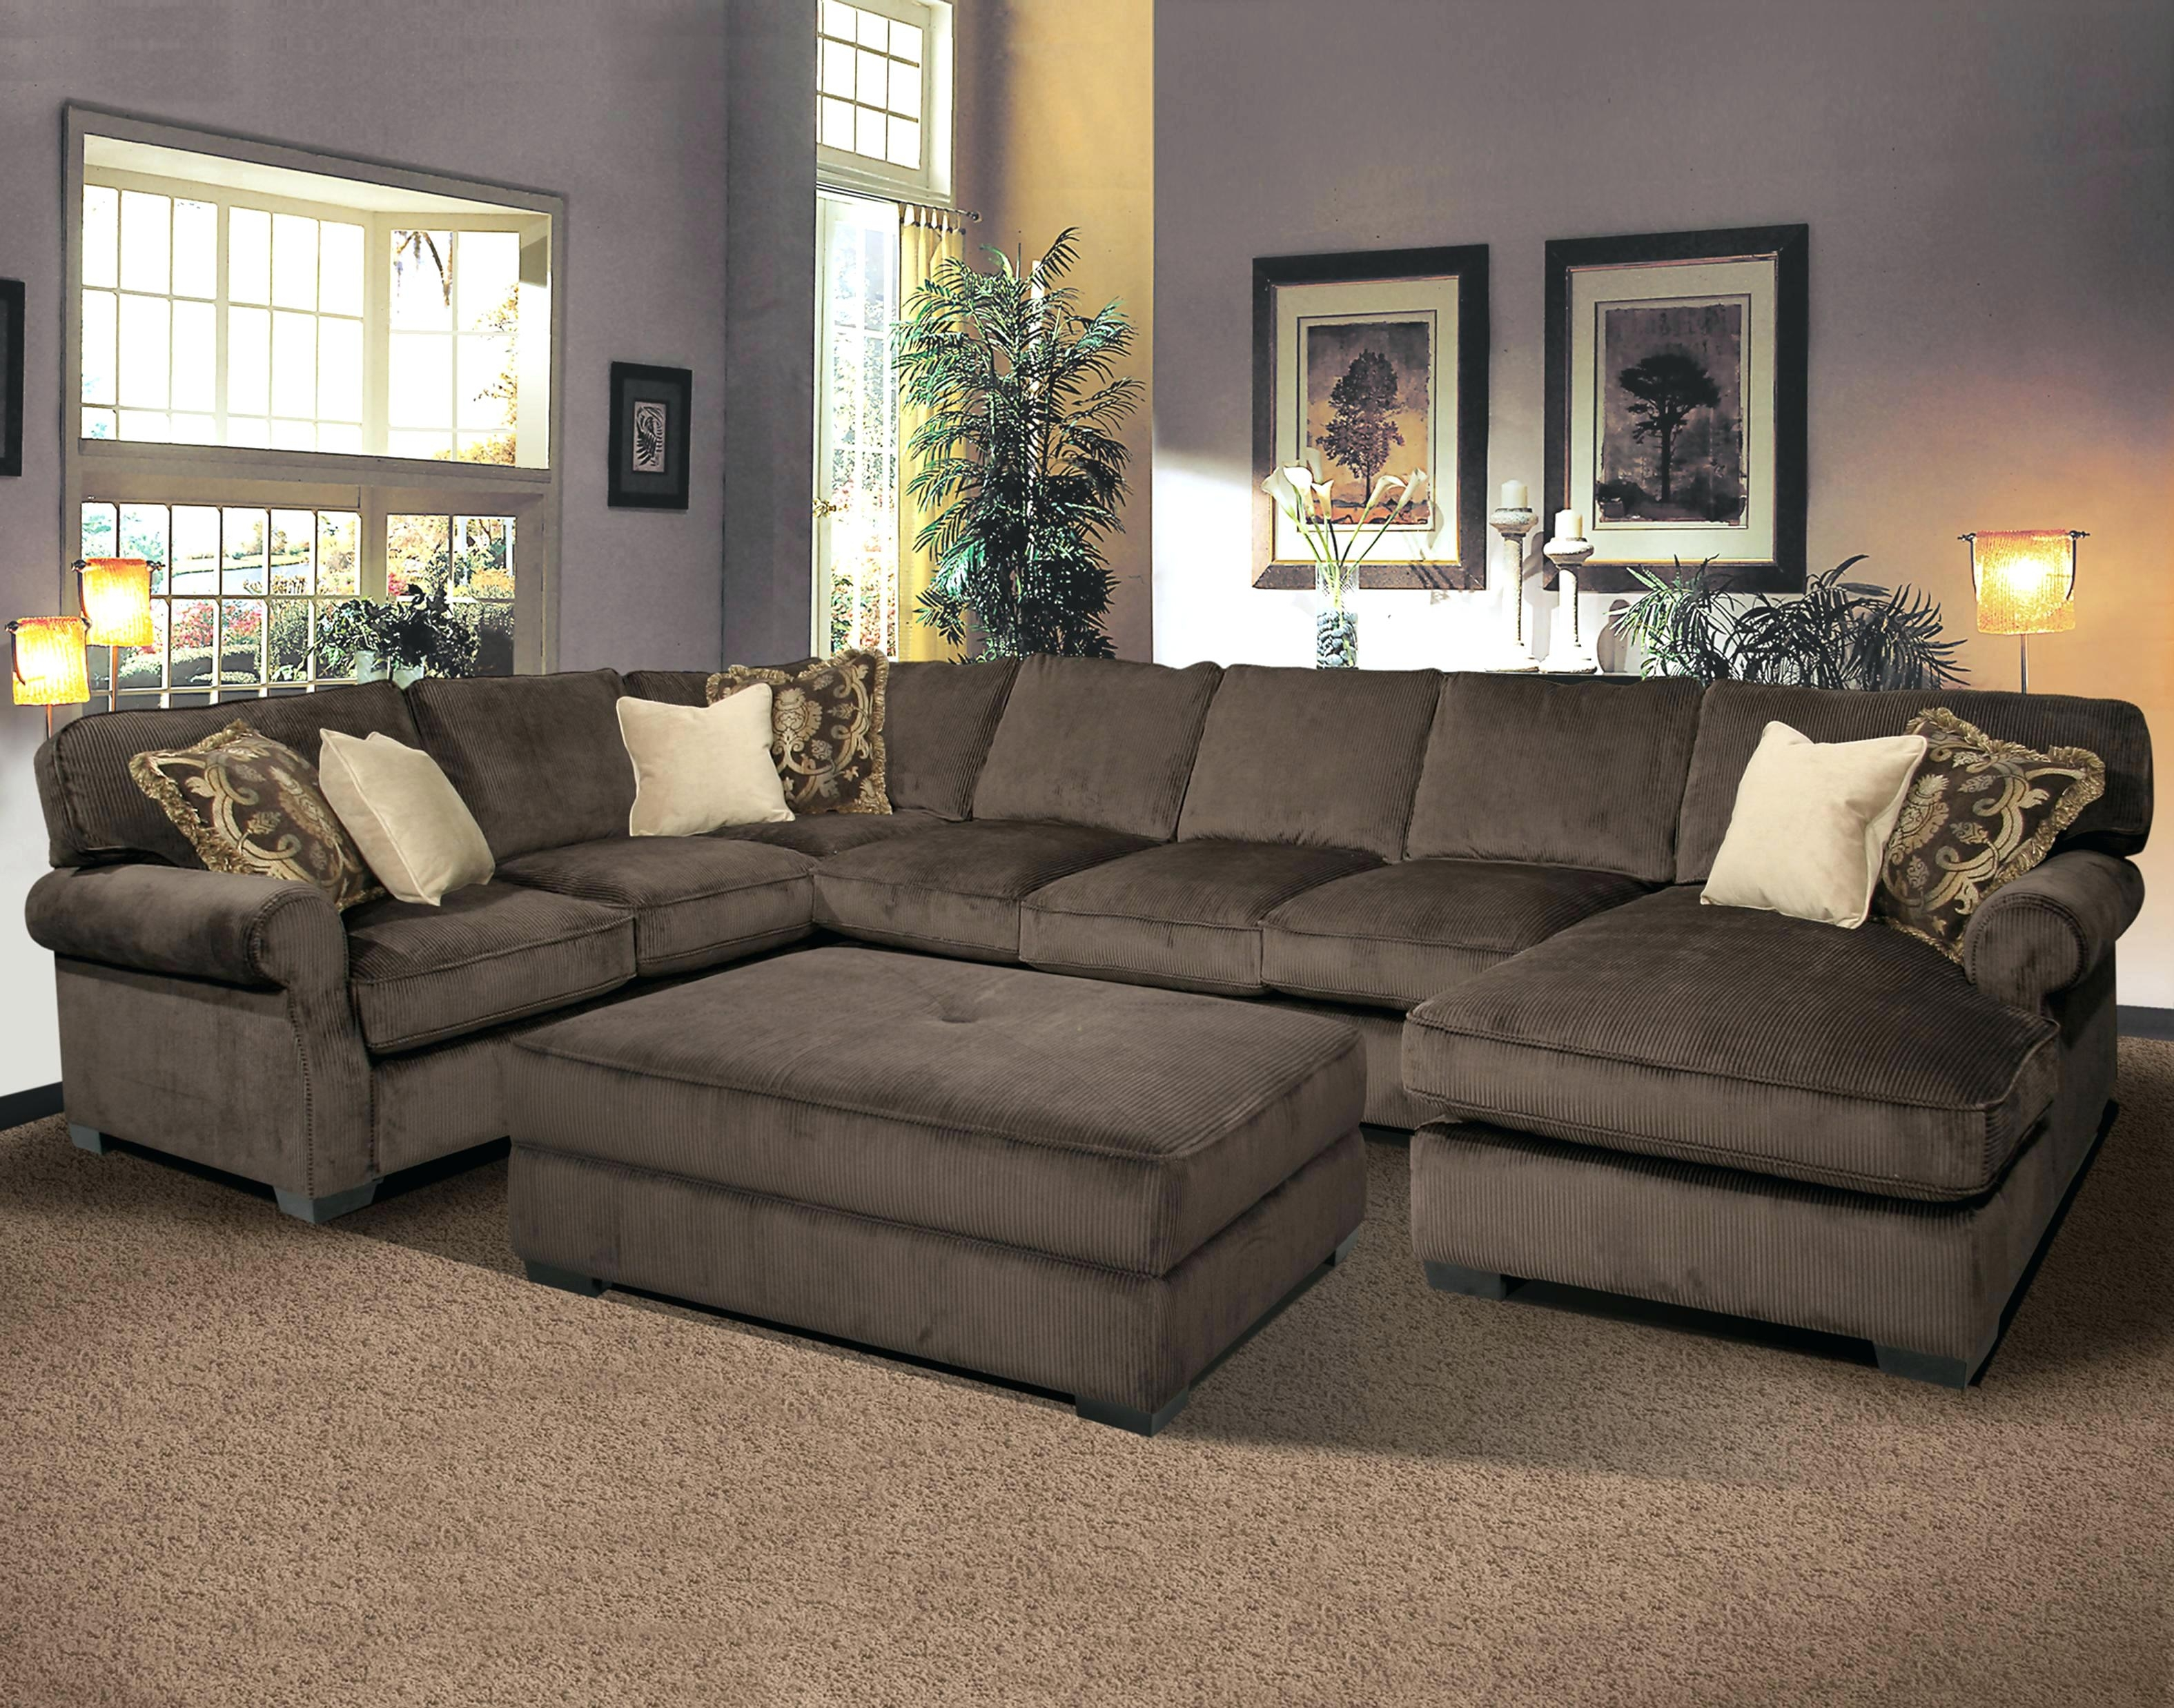 Extra Large Sectional Sofas Leather Couches With Recliners Modern throughout Large U Shaped Sectionals (Image 5 of 15)